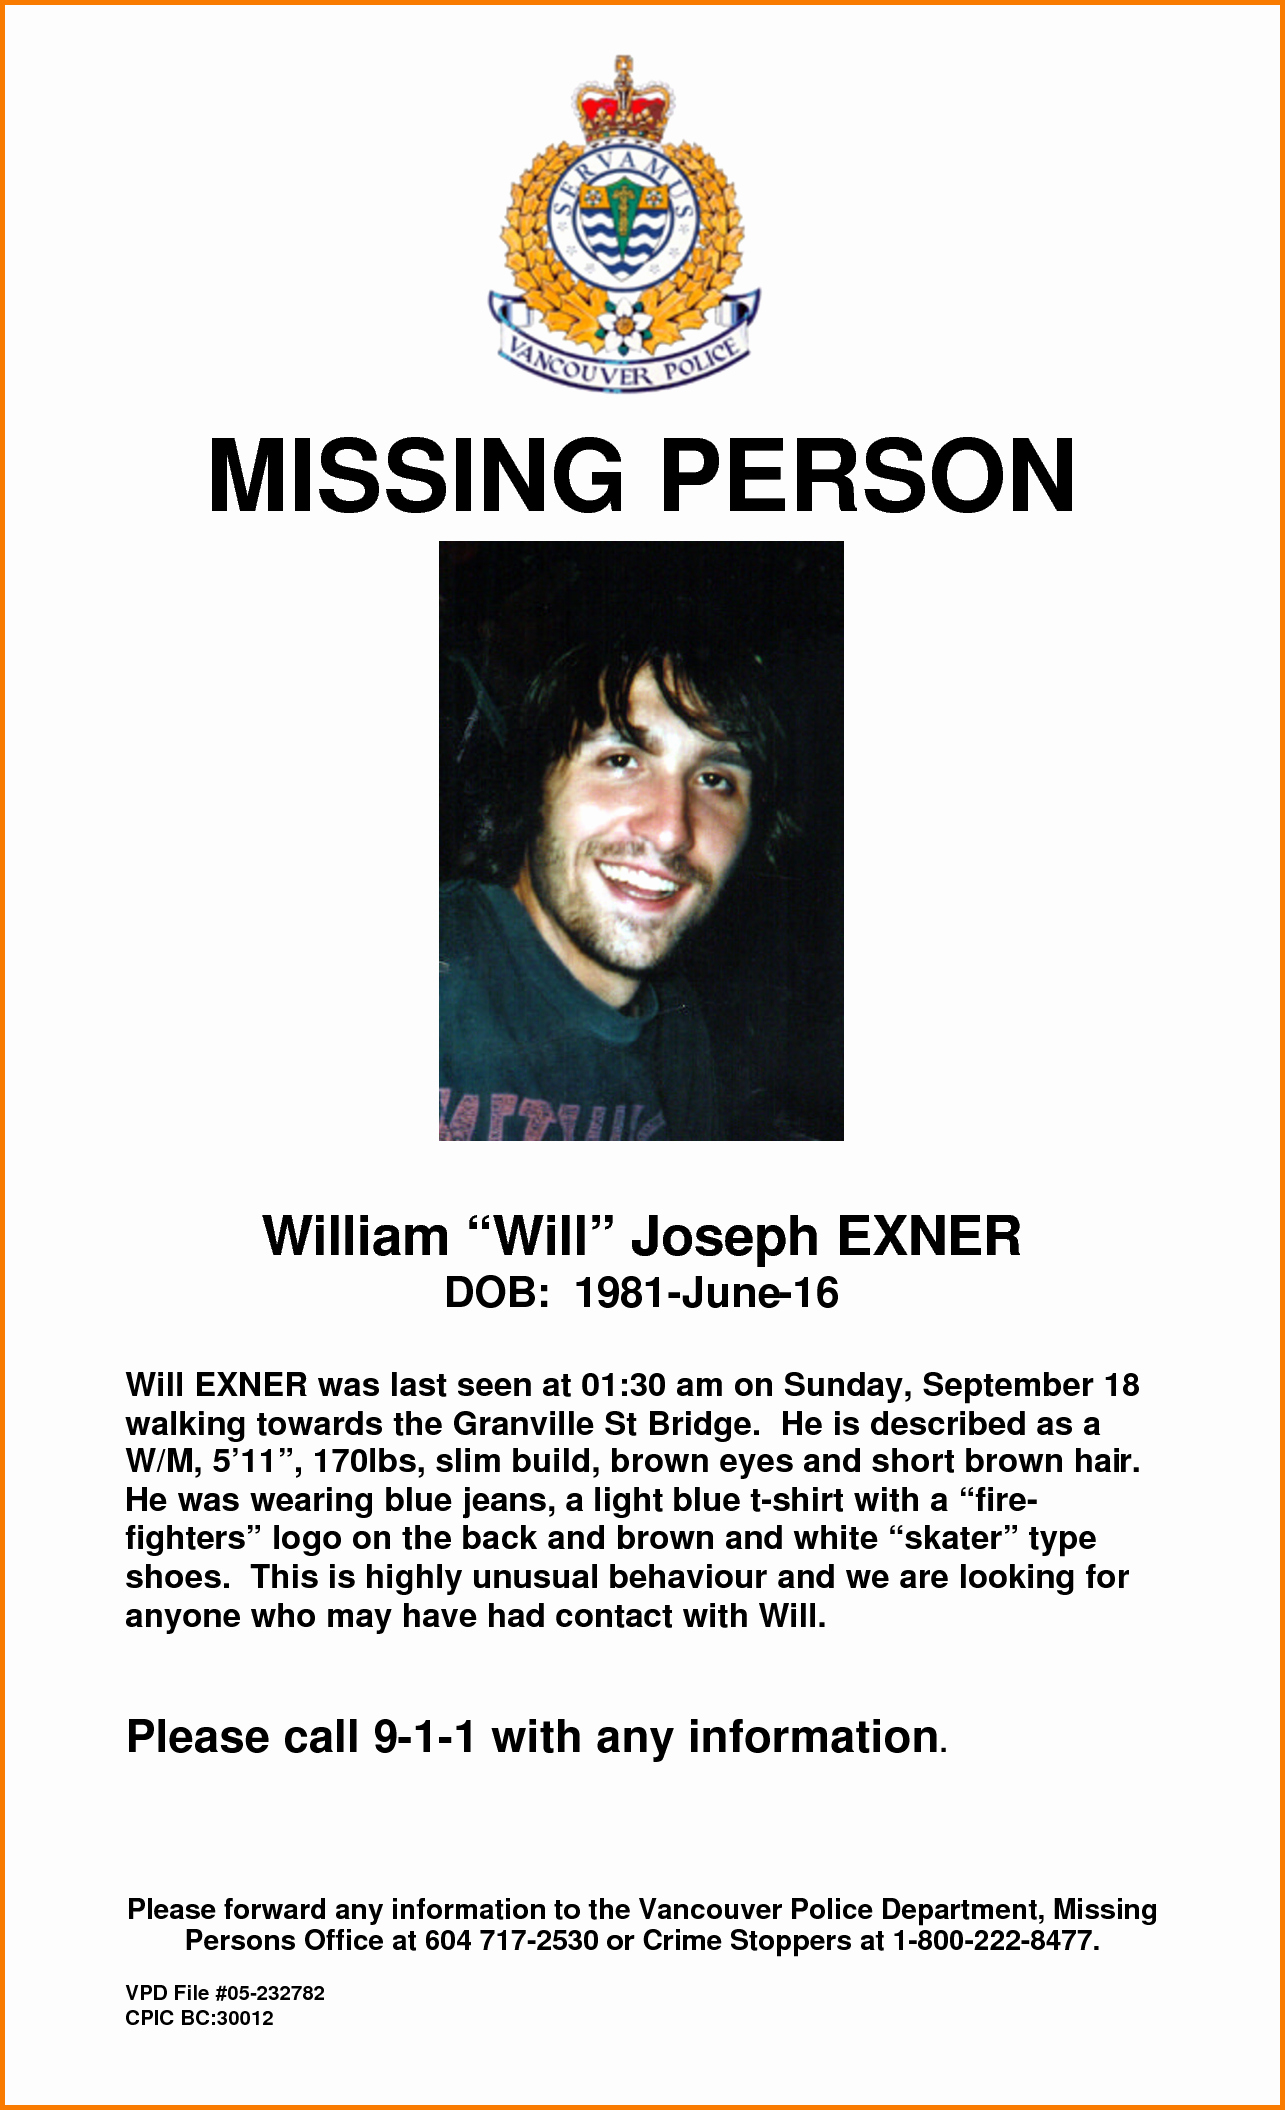 Missing Person Flyer Template Lovely Missing Person Poster Template